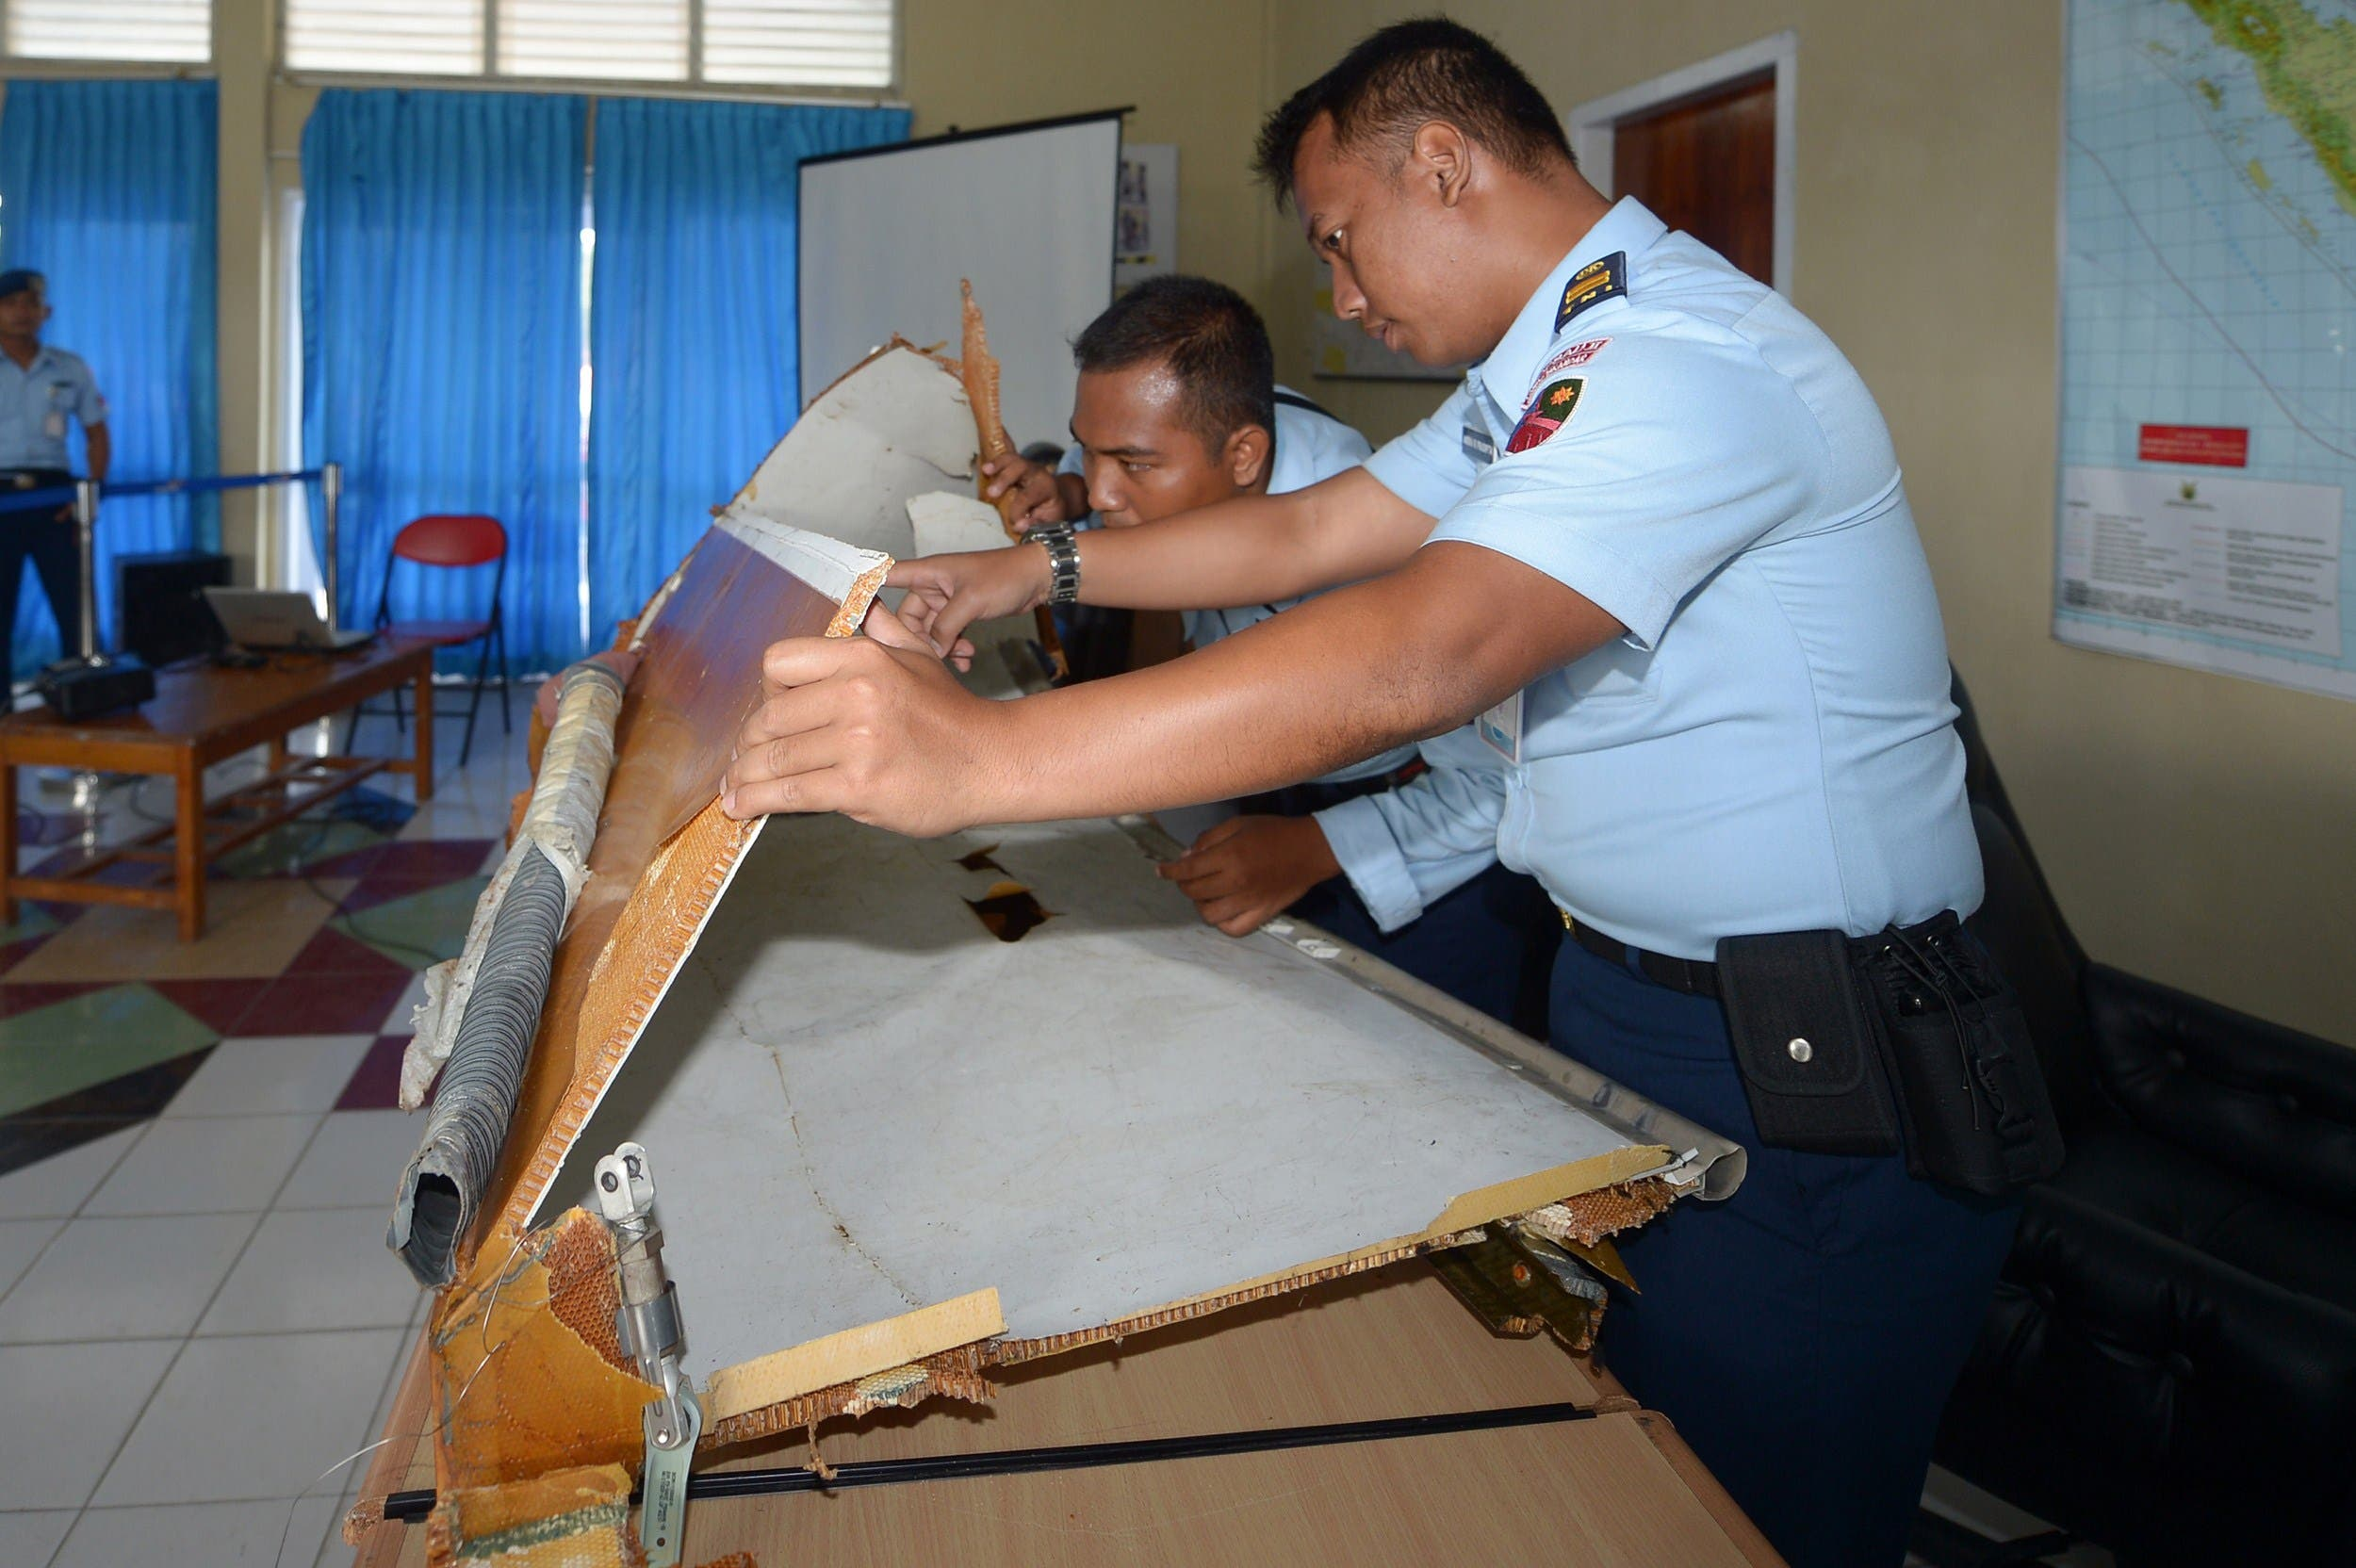 Indonesian military officers examine a piece of wreckage from AirAsia flight QZ8501, lost over the Java Sea, at the military base in Pangkalan Bun, the town with the nearest airstrip to the crash site, in Central Kalimantan on January 2, 2015. (AFP)